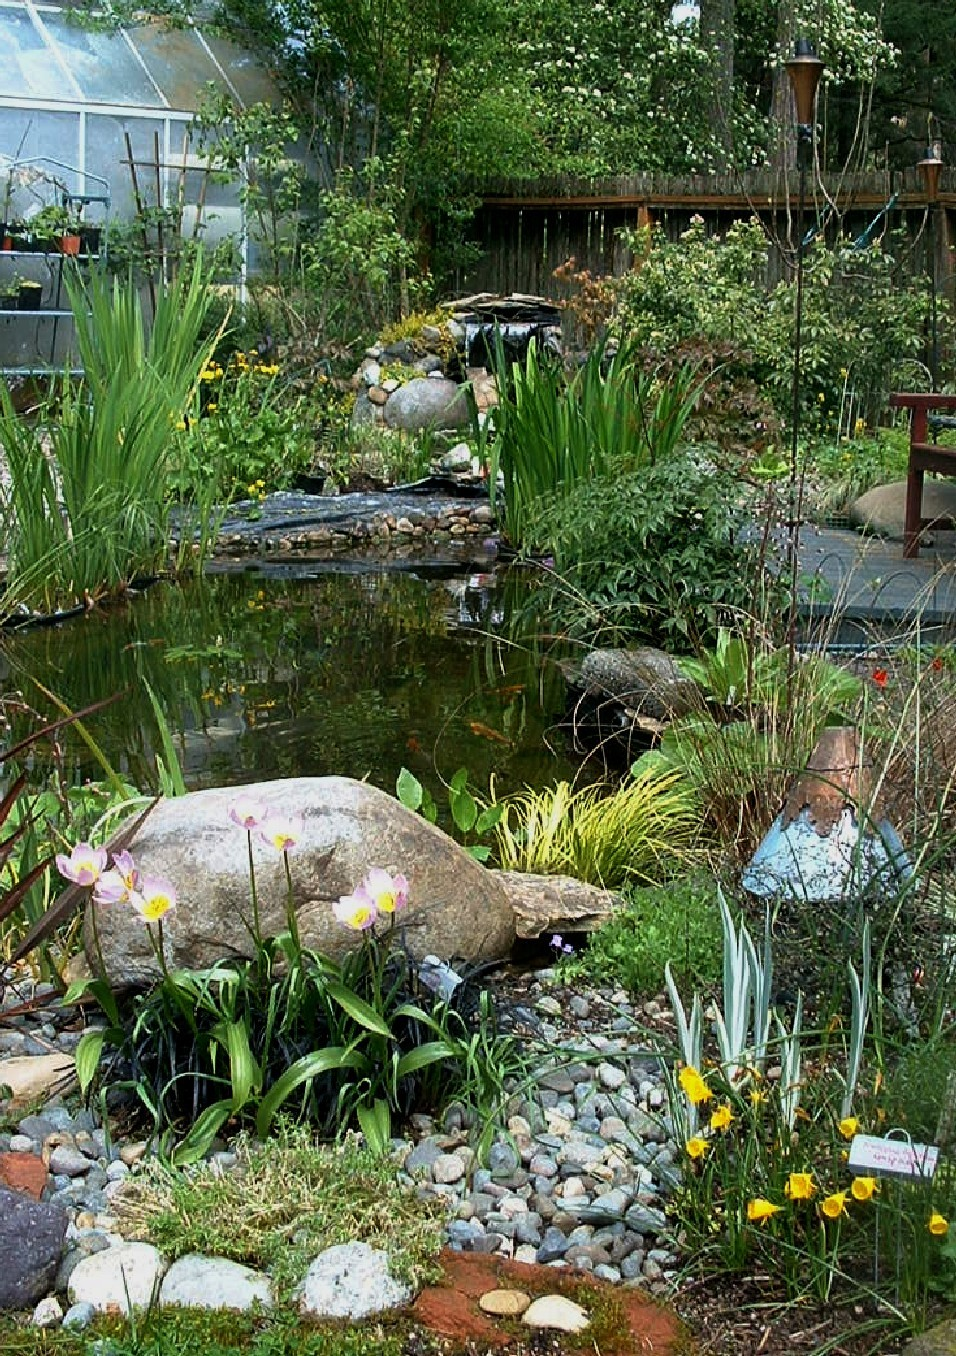 Koi fish and ponding cubit questions about building a for Garden pond questions